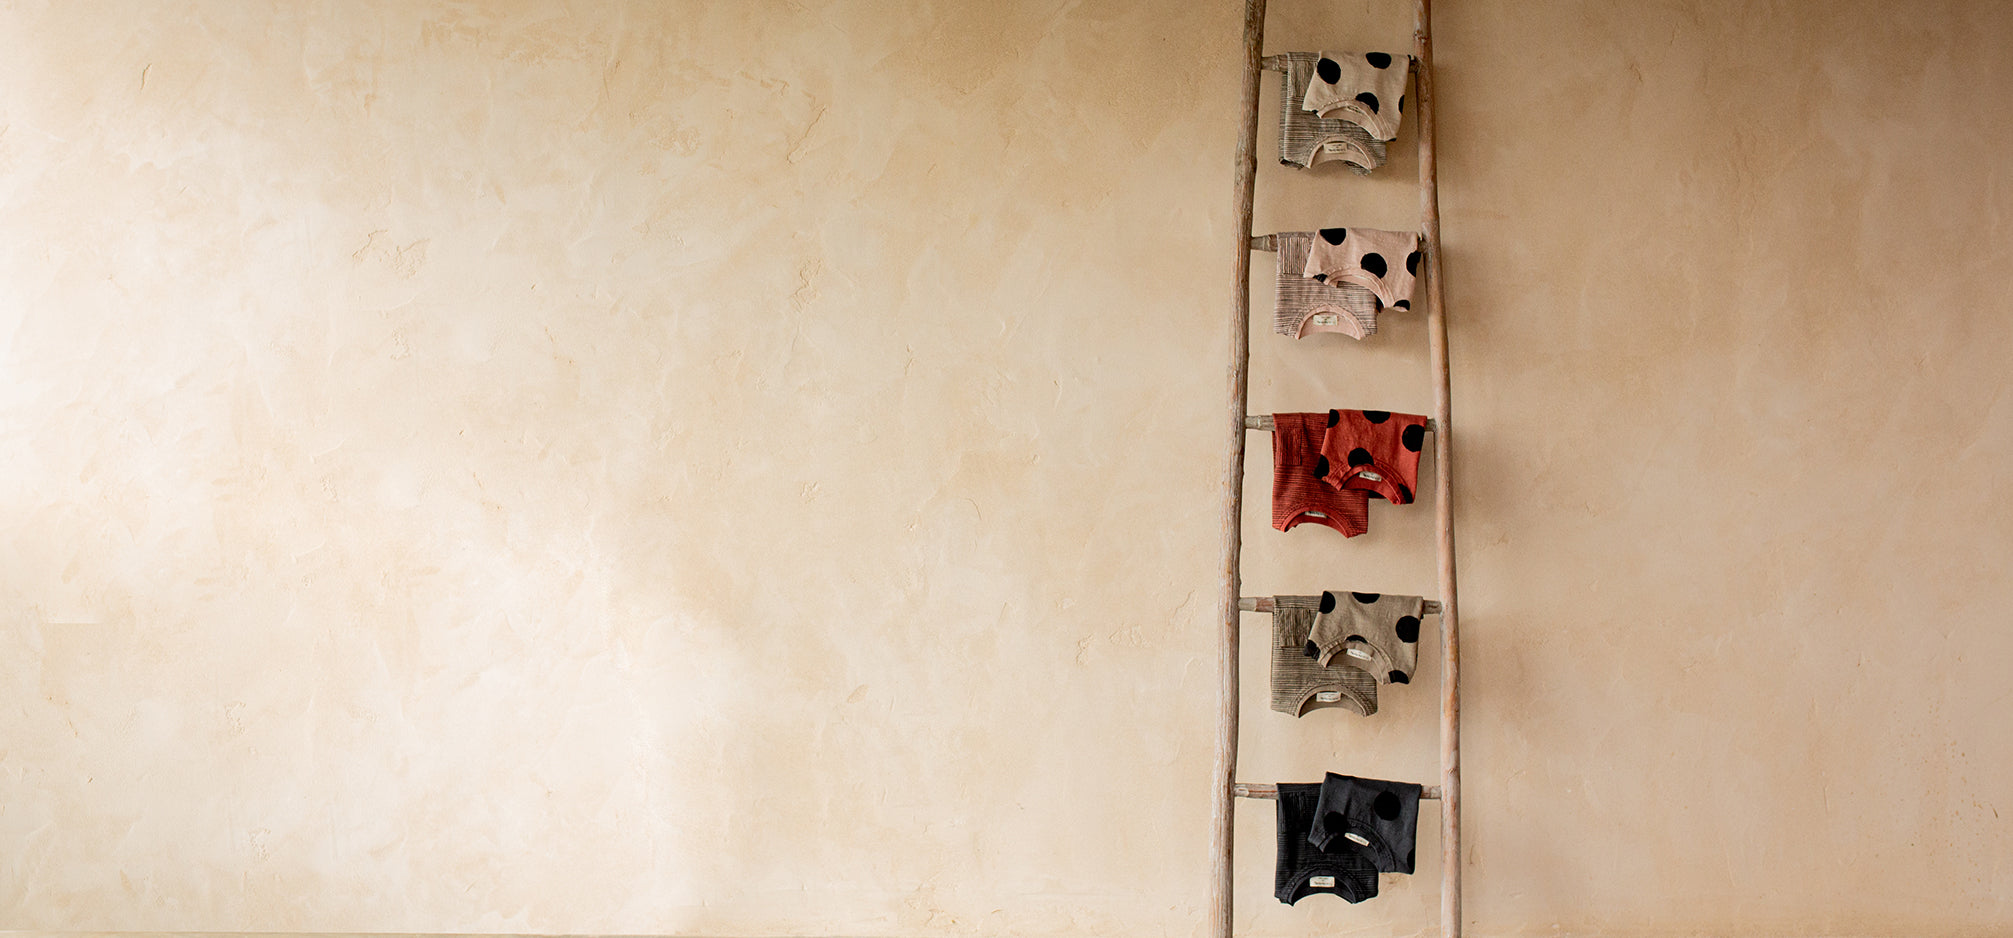 Folded baby clothing hanging from a wooden ladder leaning against a beige wall.